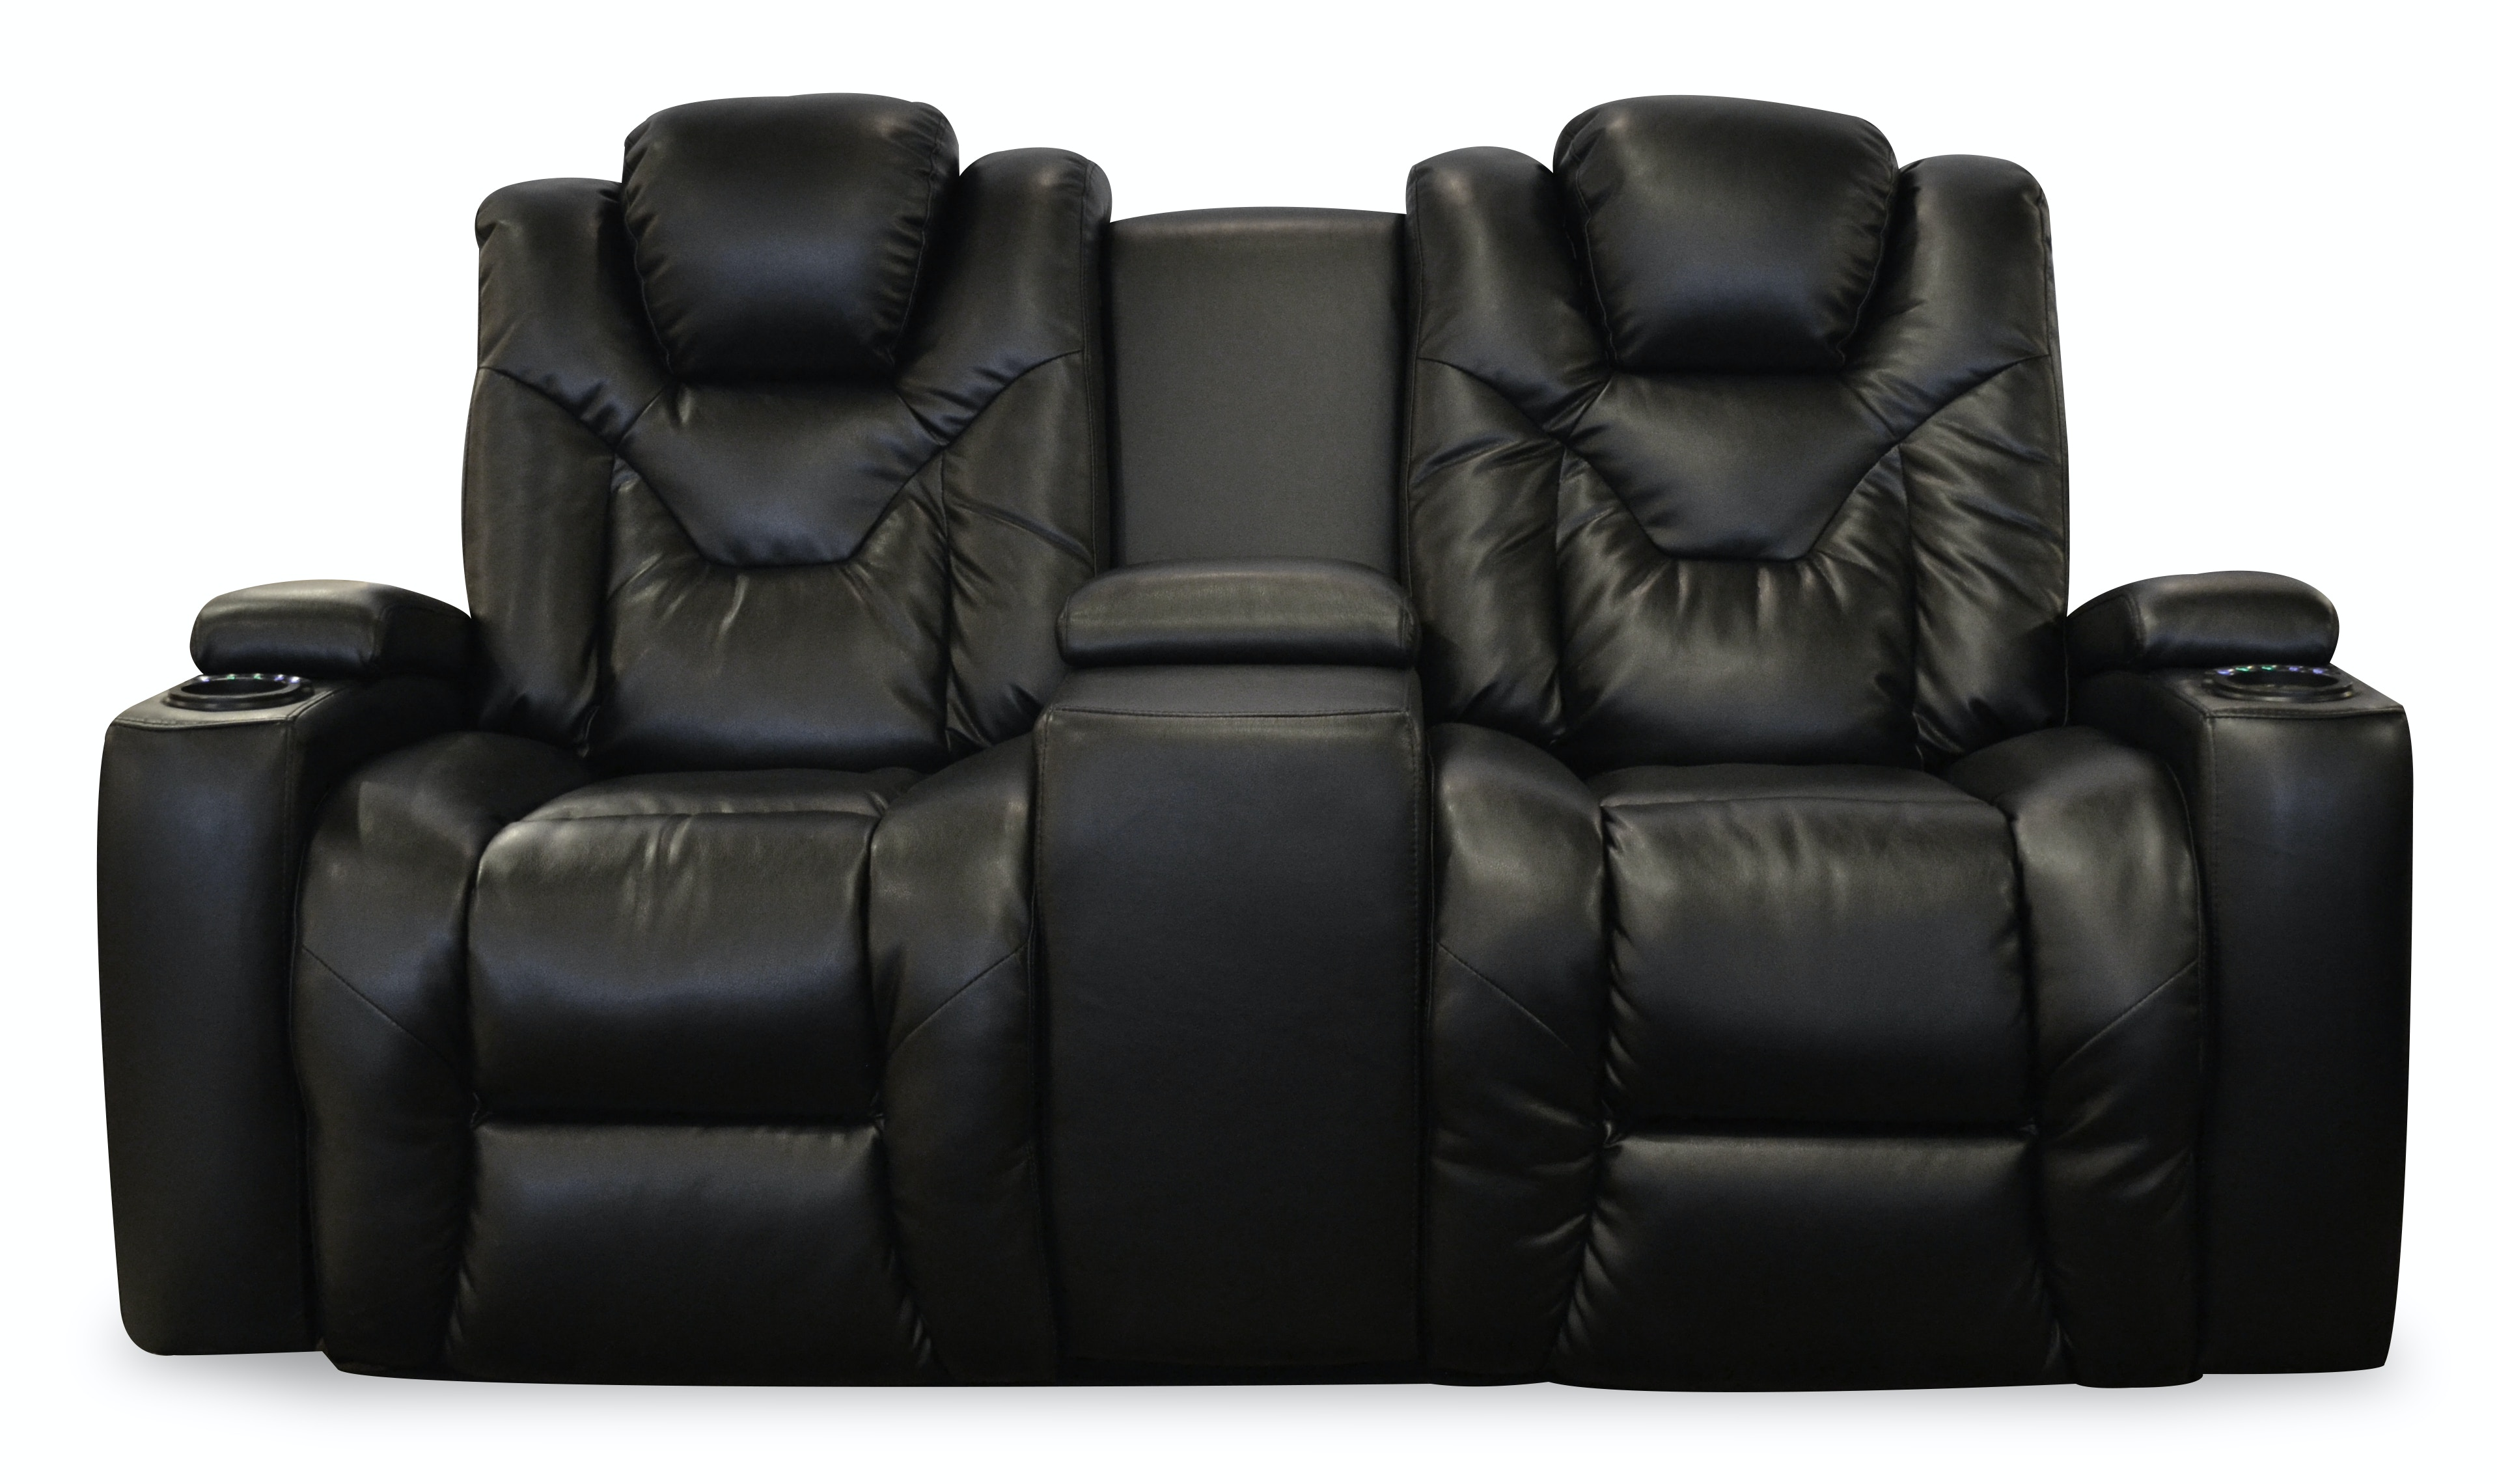 Oveyo Living Room Maxx Power Reclining Console Loveseat 498141 at Kittleu0027s Furniture  sc 1 st  Kittleu0027s Furniture & Oveyo Living Room Maxx Power Reclining Console Loveseat 498141 ... islam-shia.org